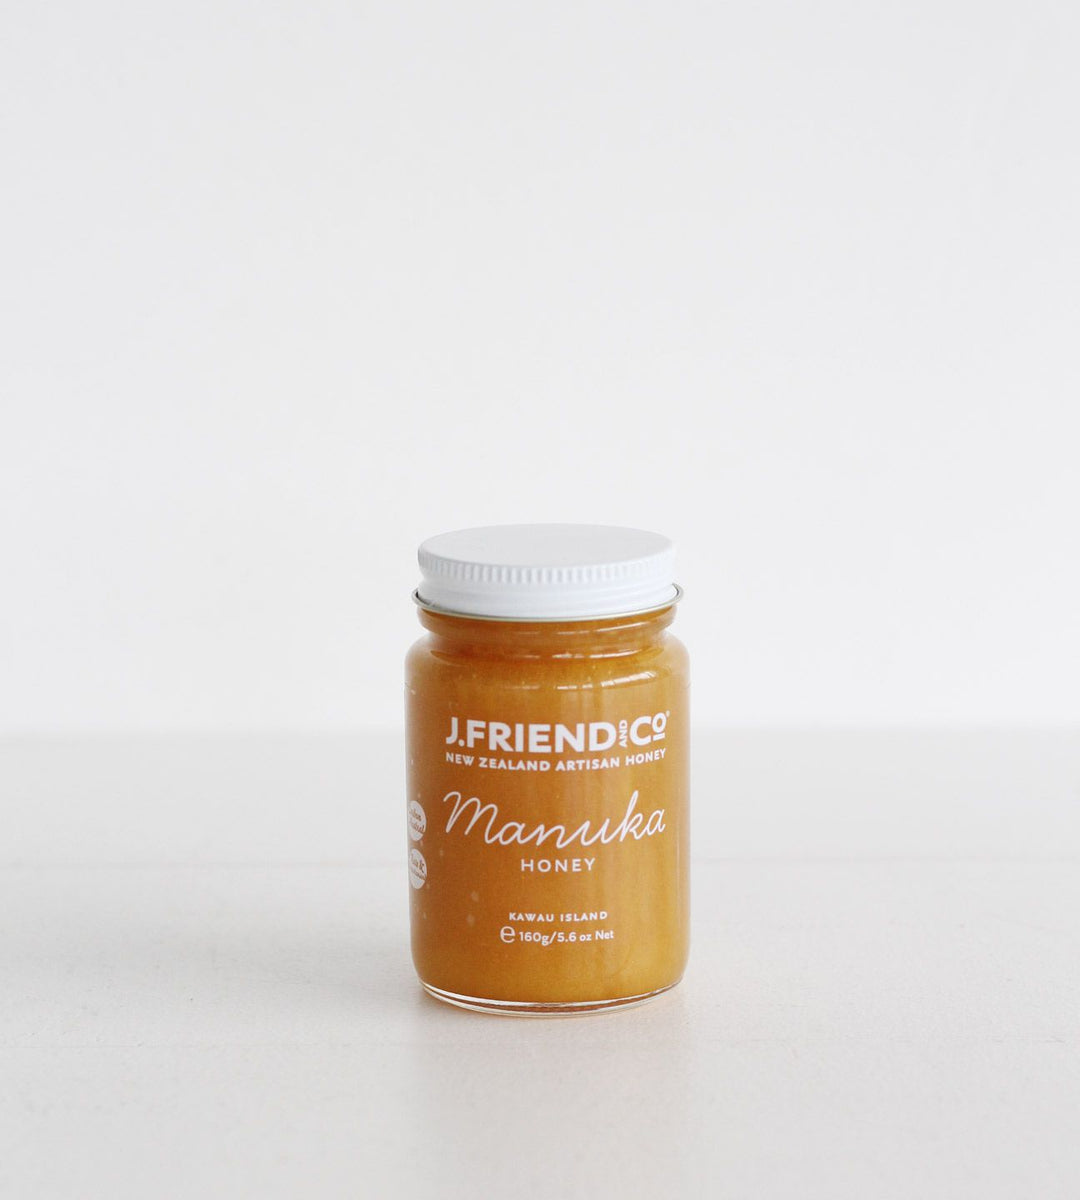 J. Friend & Co. | Manuka Honey | 160g